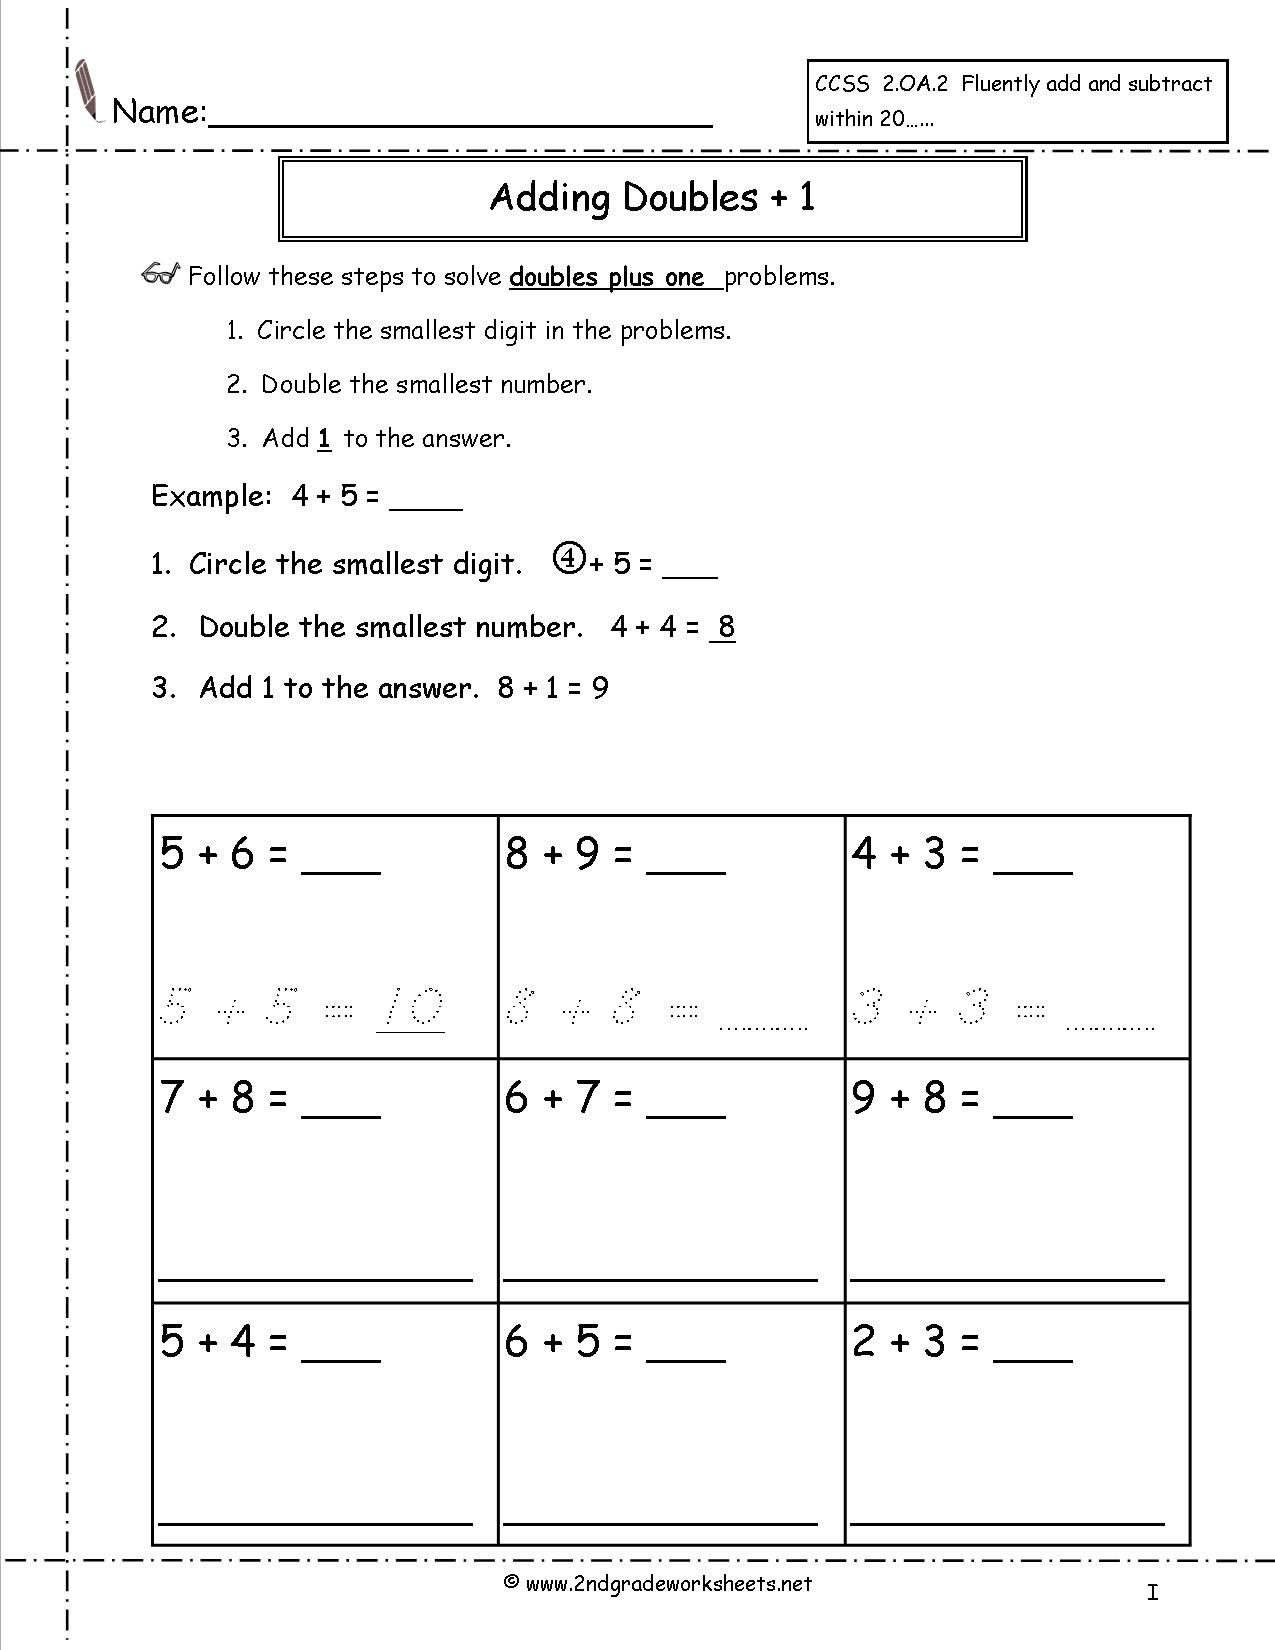 Fluency Worksheets Doubles Worksheets Doubles Plus One Math